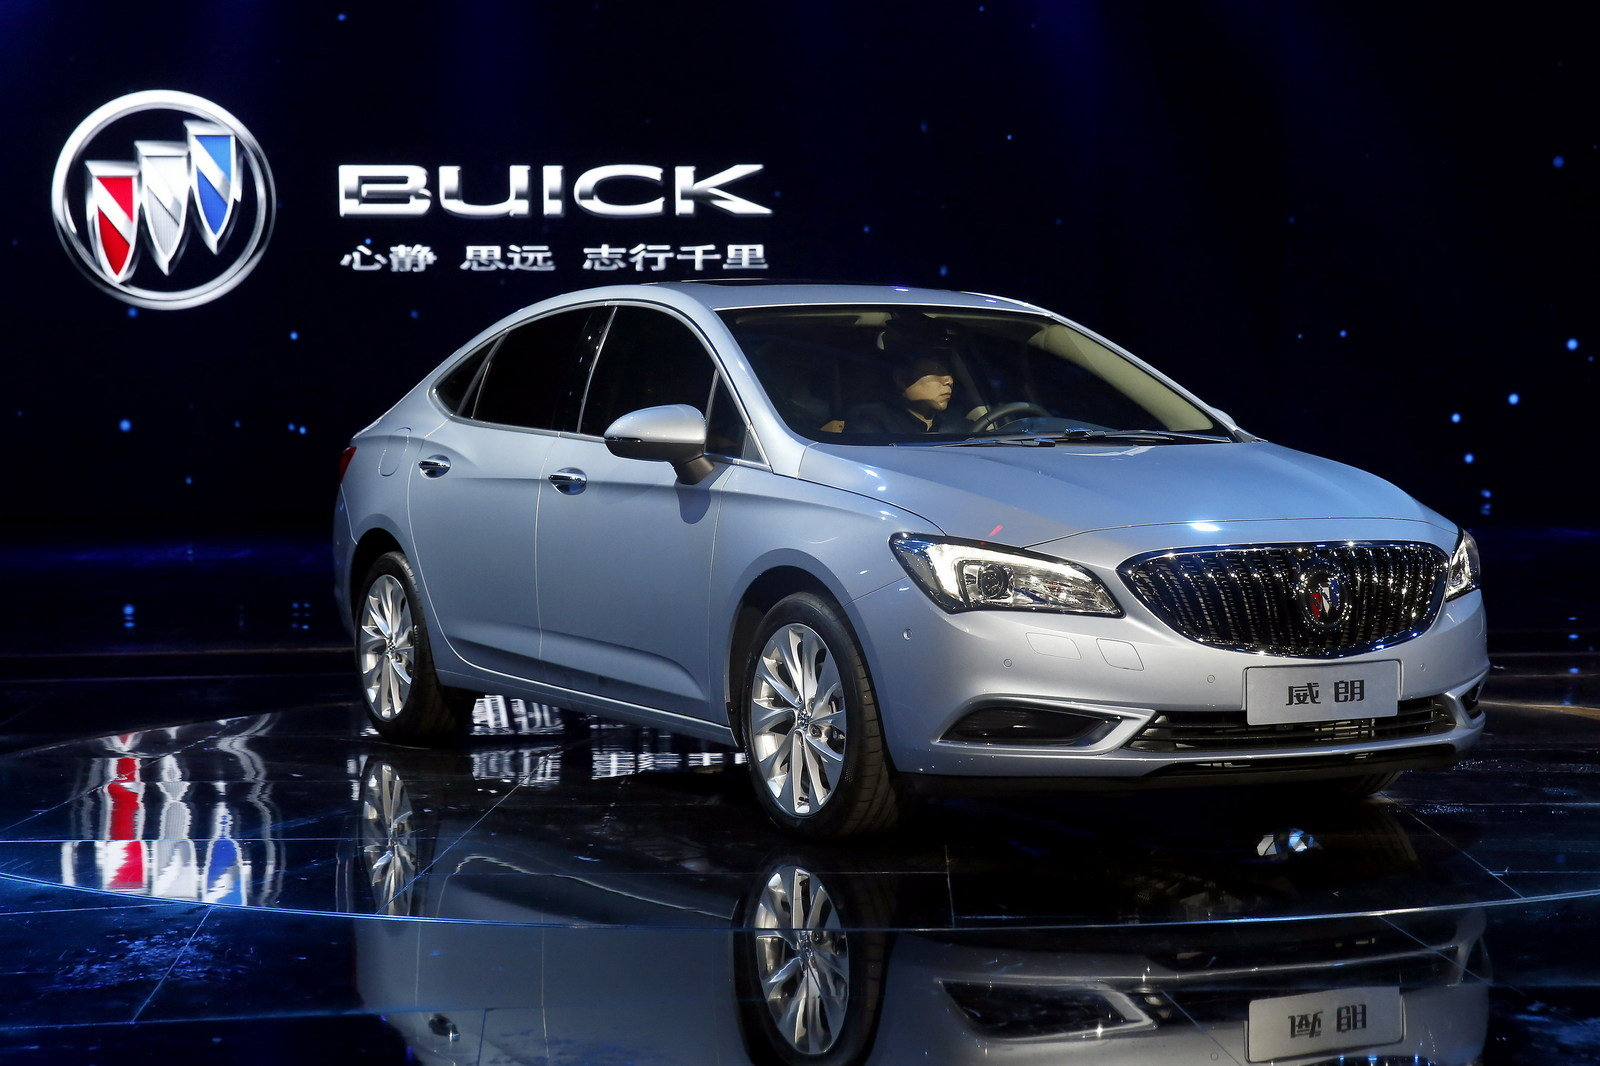 2016 buick verano picture 627712 car review top speed. Black Bedroom Furniture Sets. Home Design Ideas